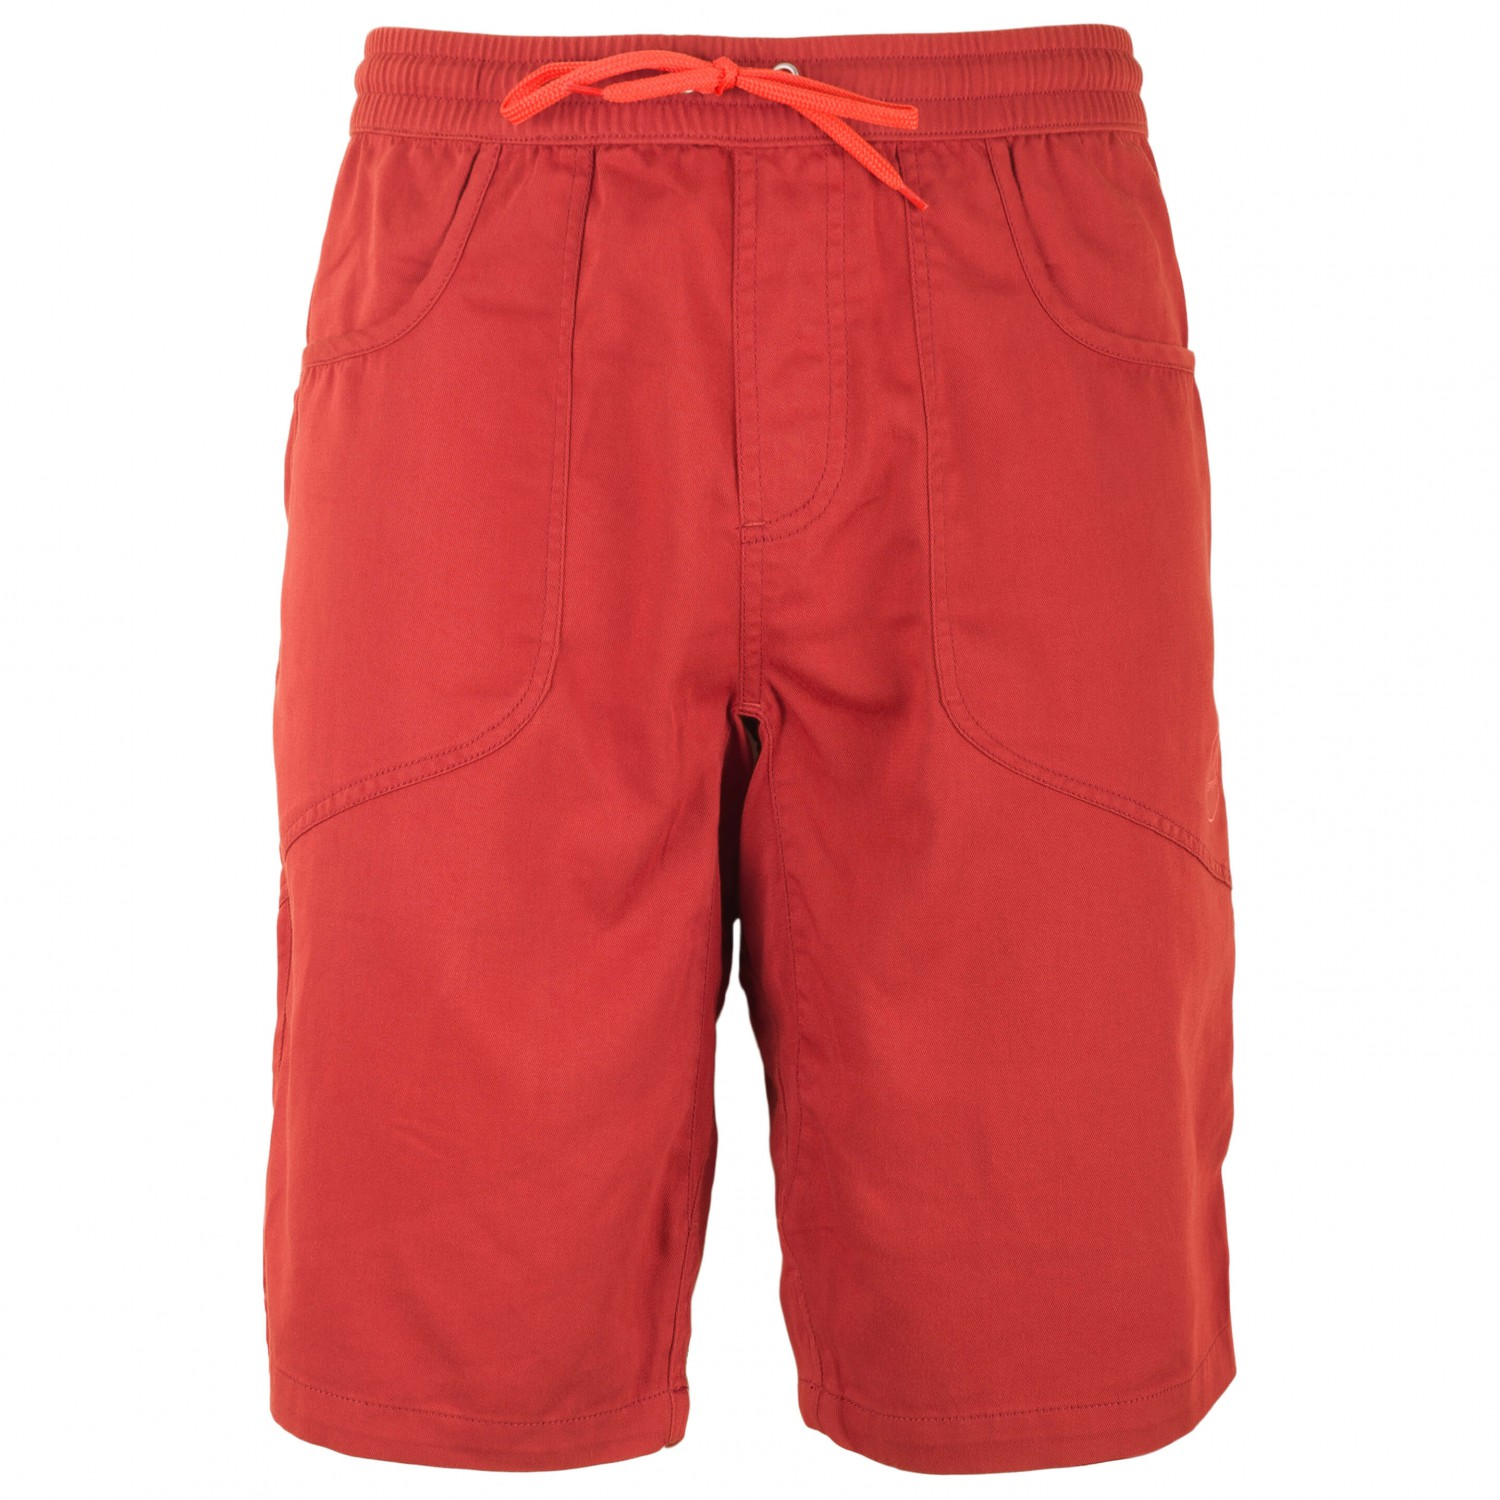 nago men Board shorts and brazilian men's swimwear available in many colors and design surf shorts, board short and sunga swimwear online shop.